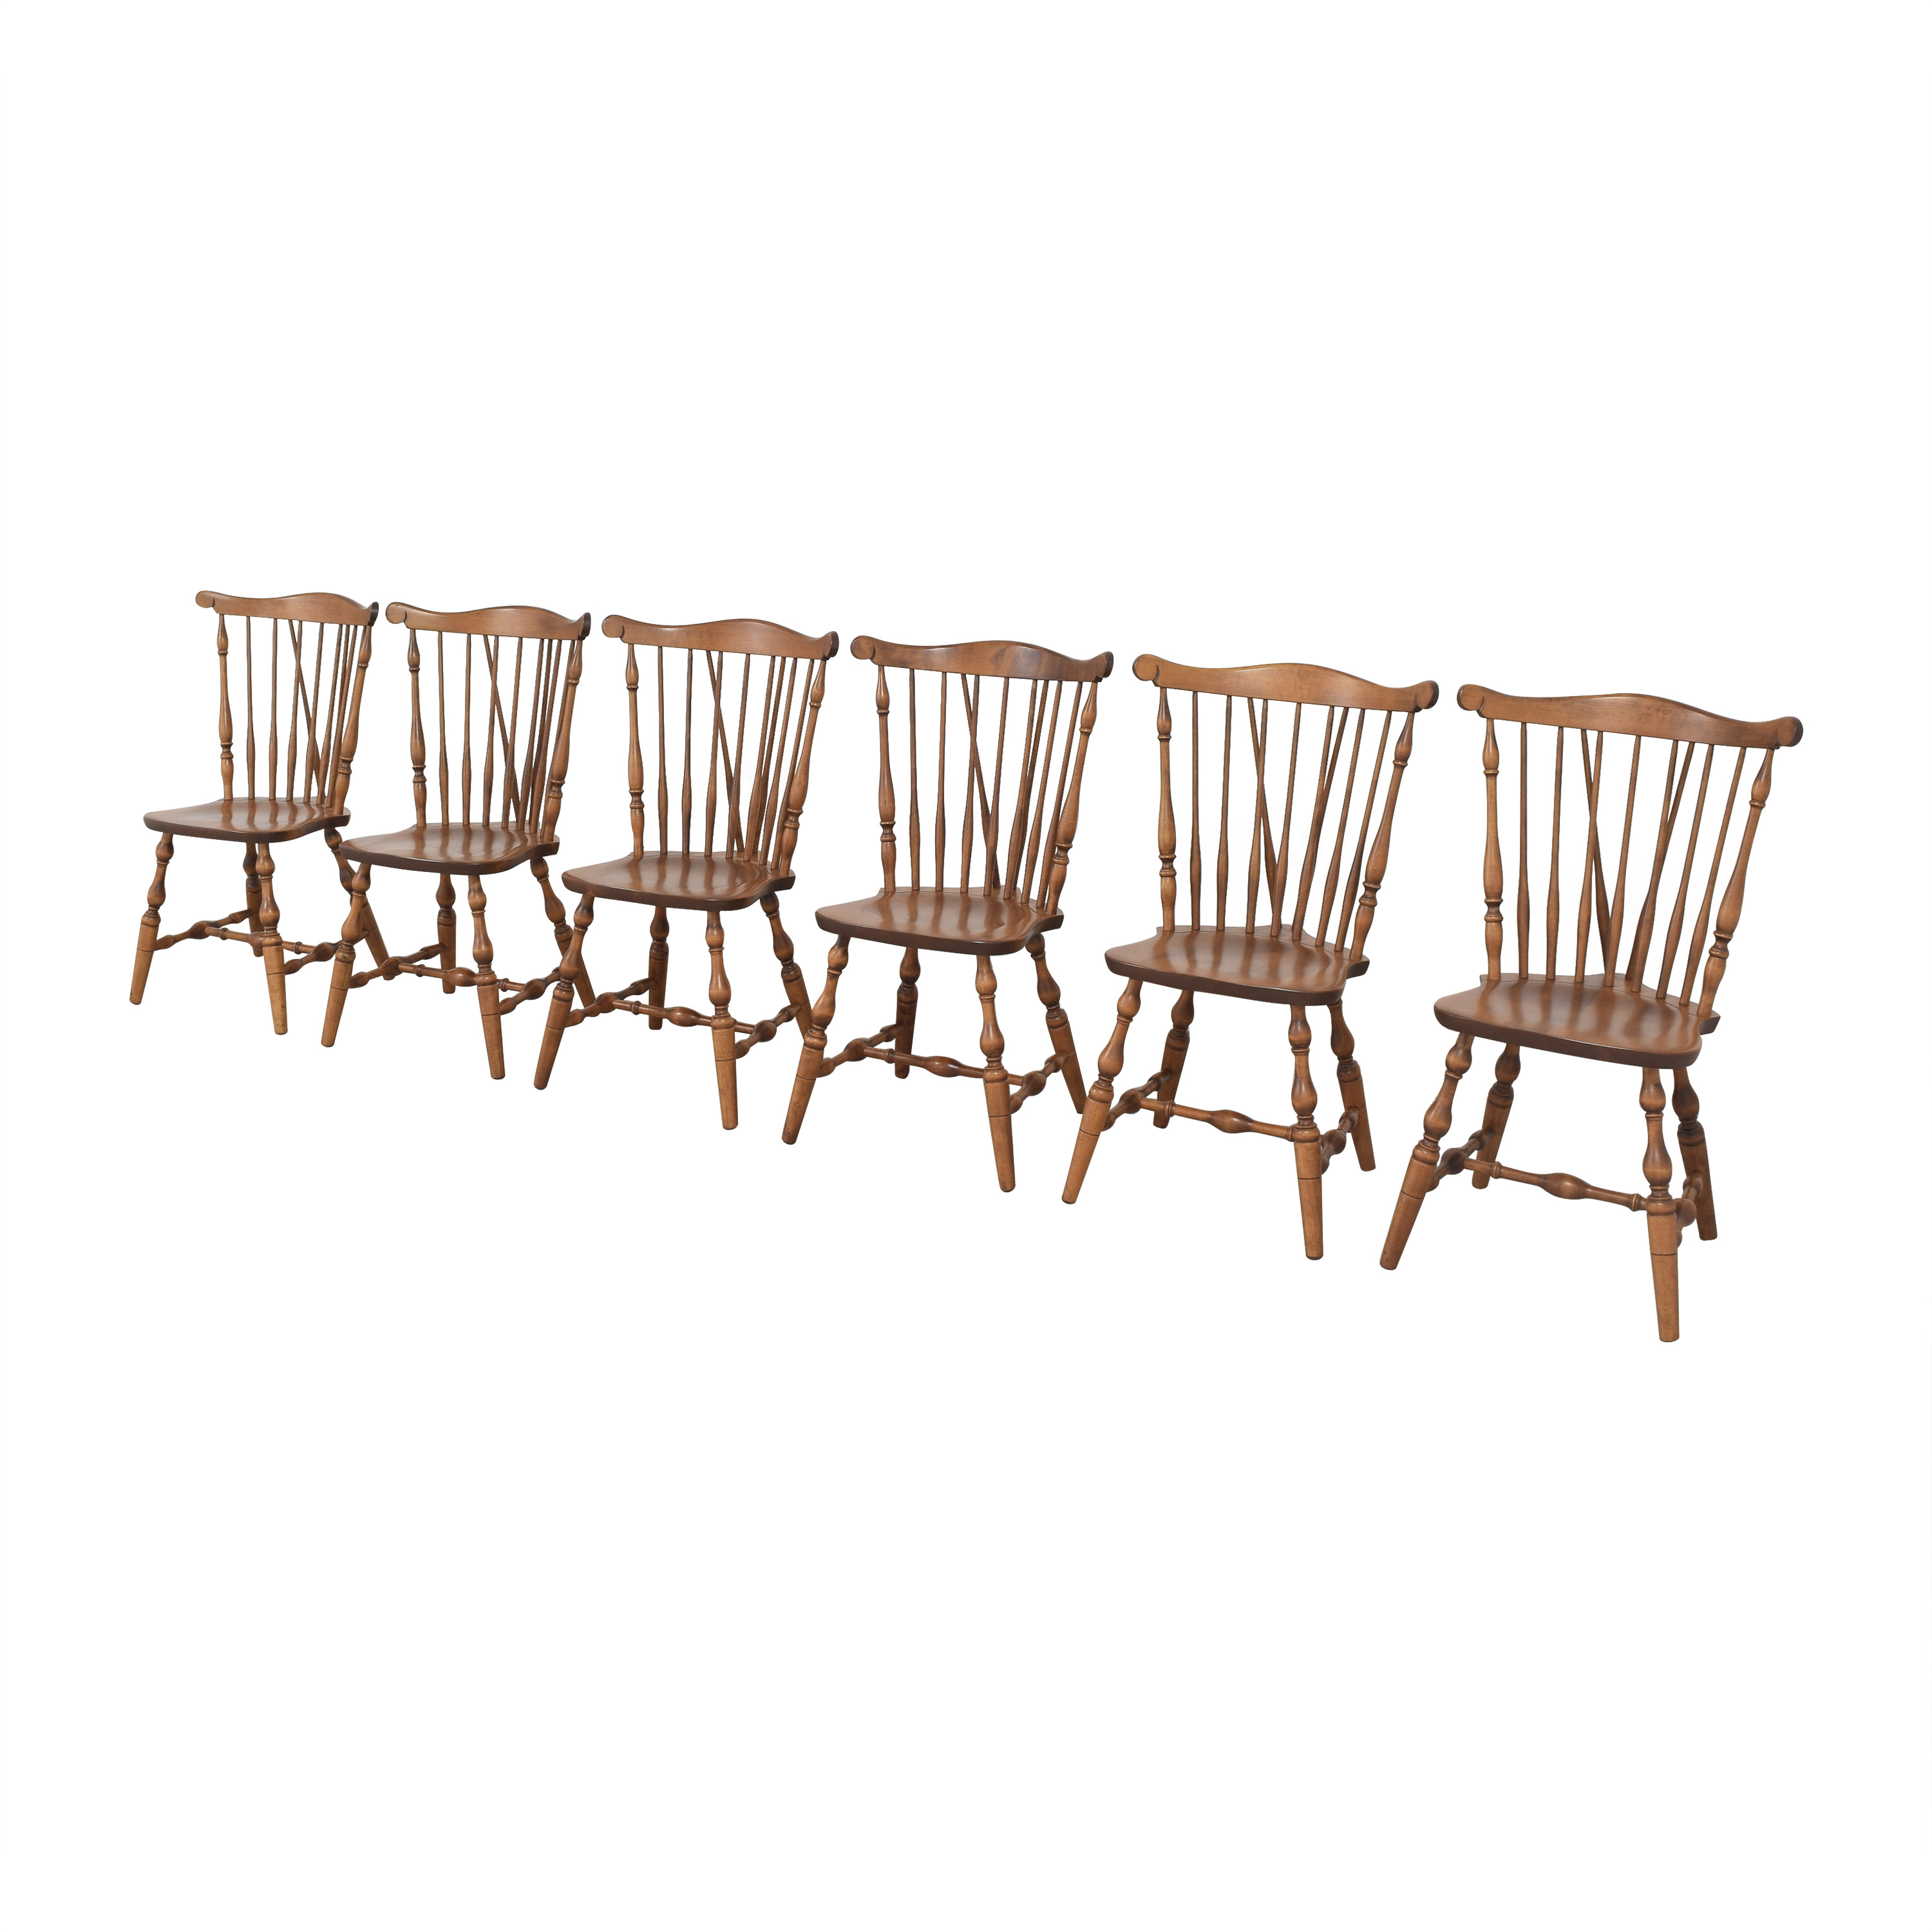 S. Bent & Bros S. Bent & Bros Brace Back Windsor Dining Side Chairs Chairs